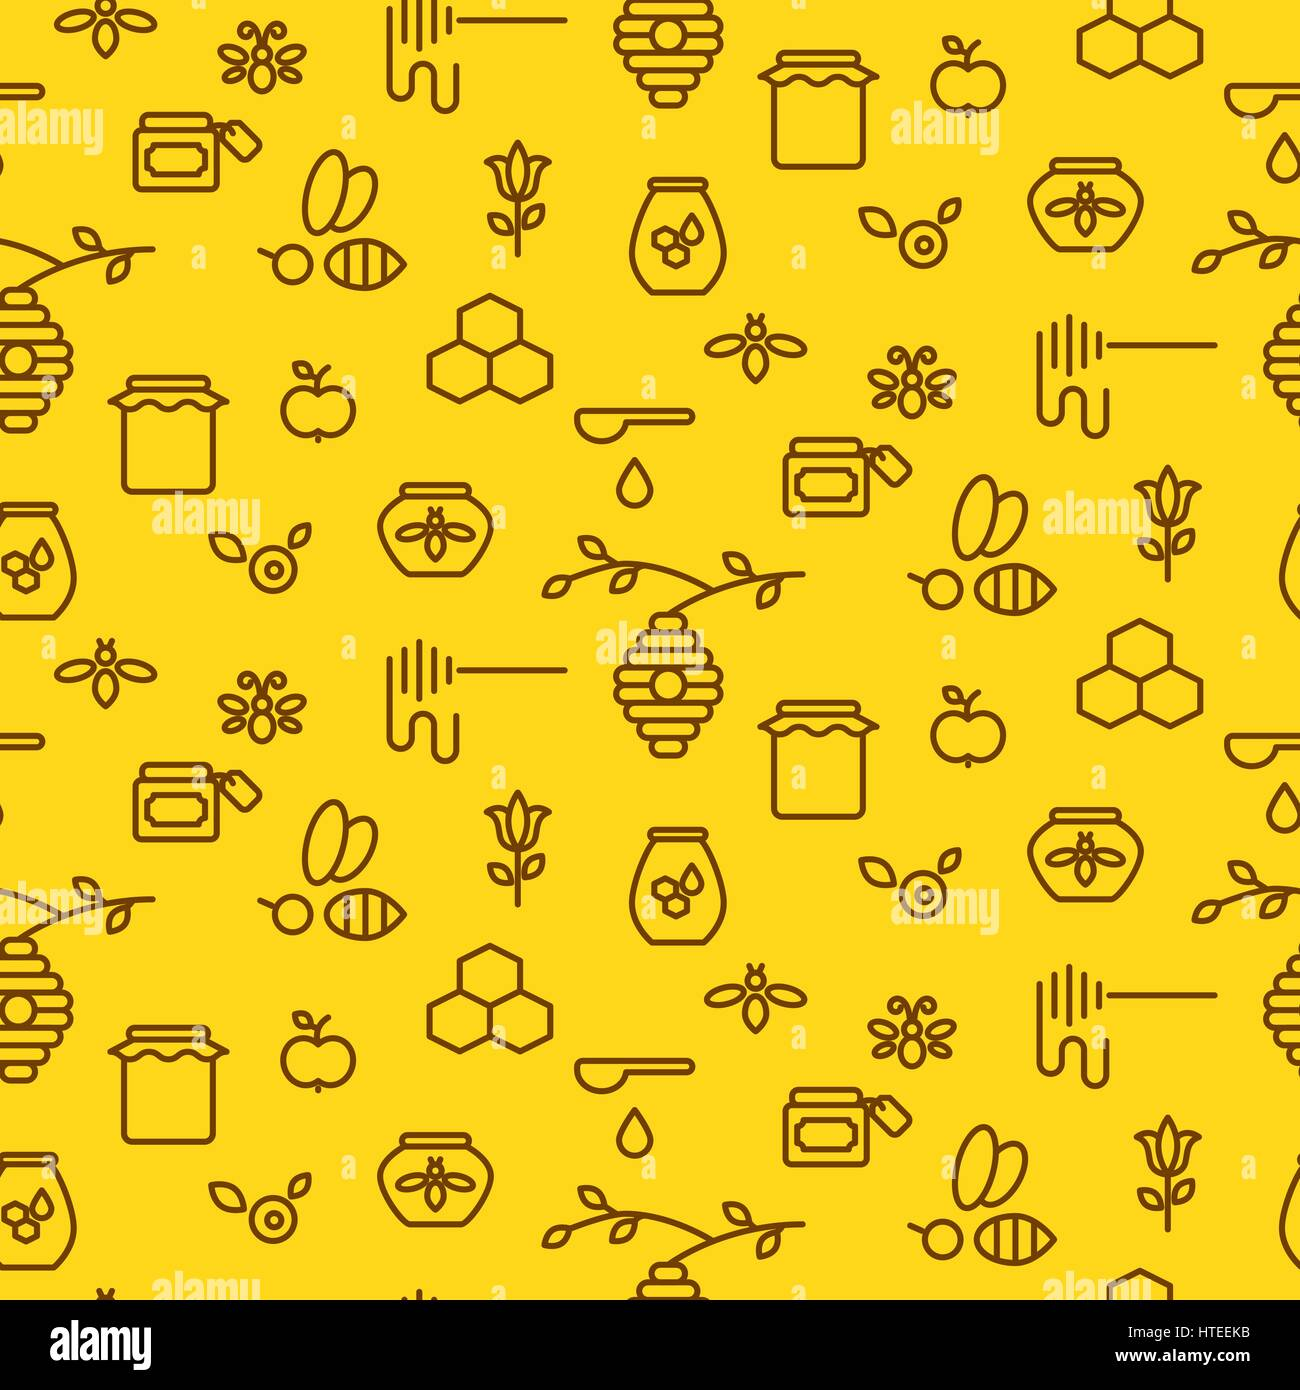 Honey outline yellow icon seamless vector pattern. - Stock Vector